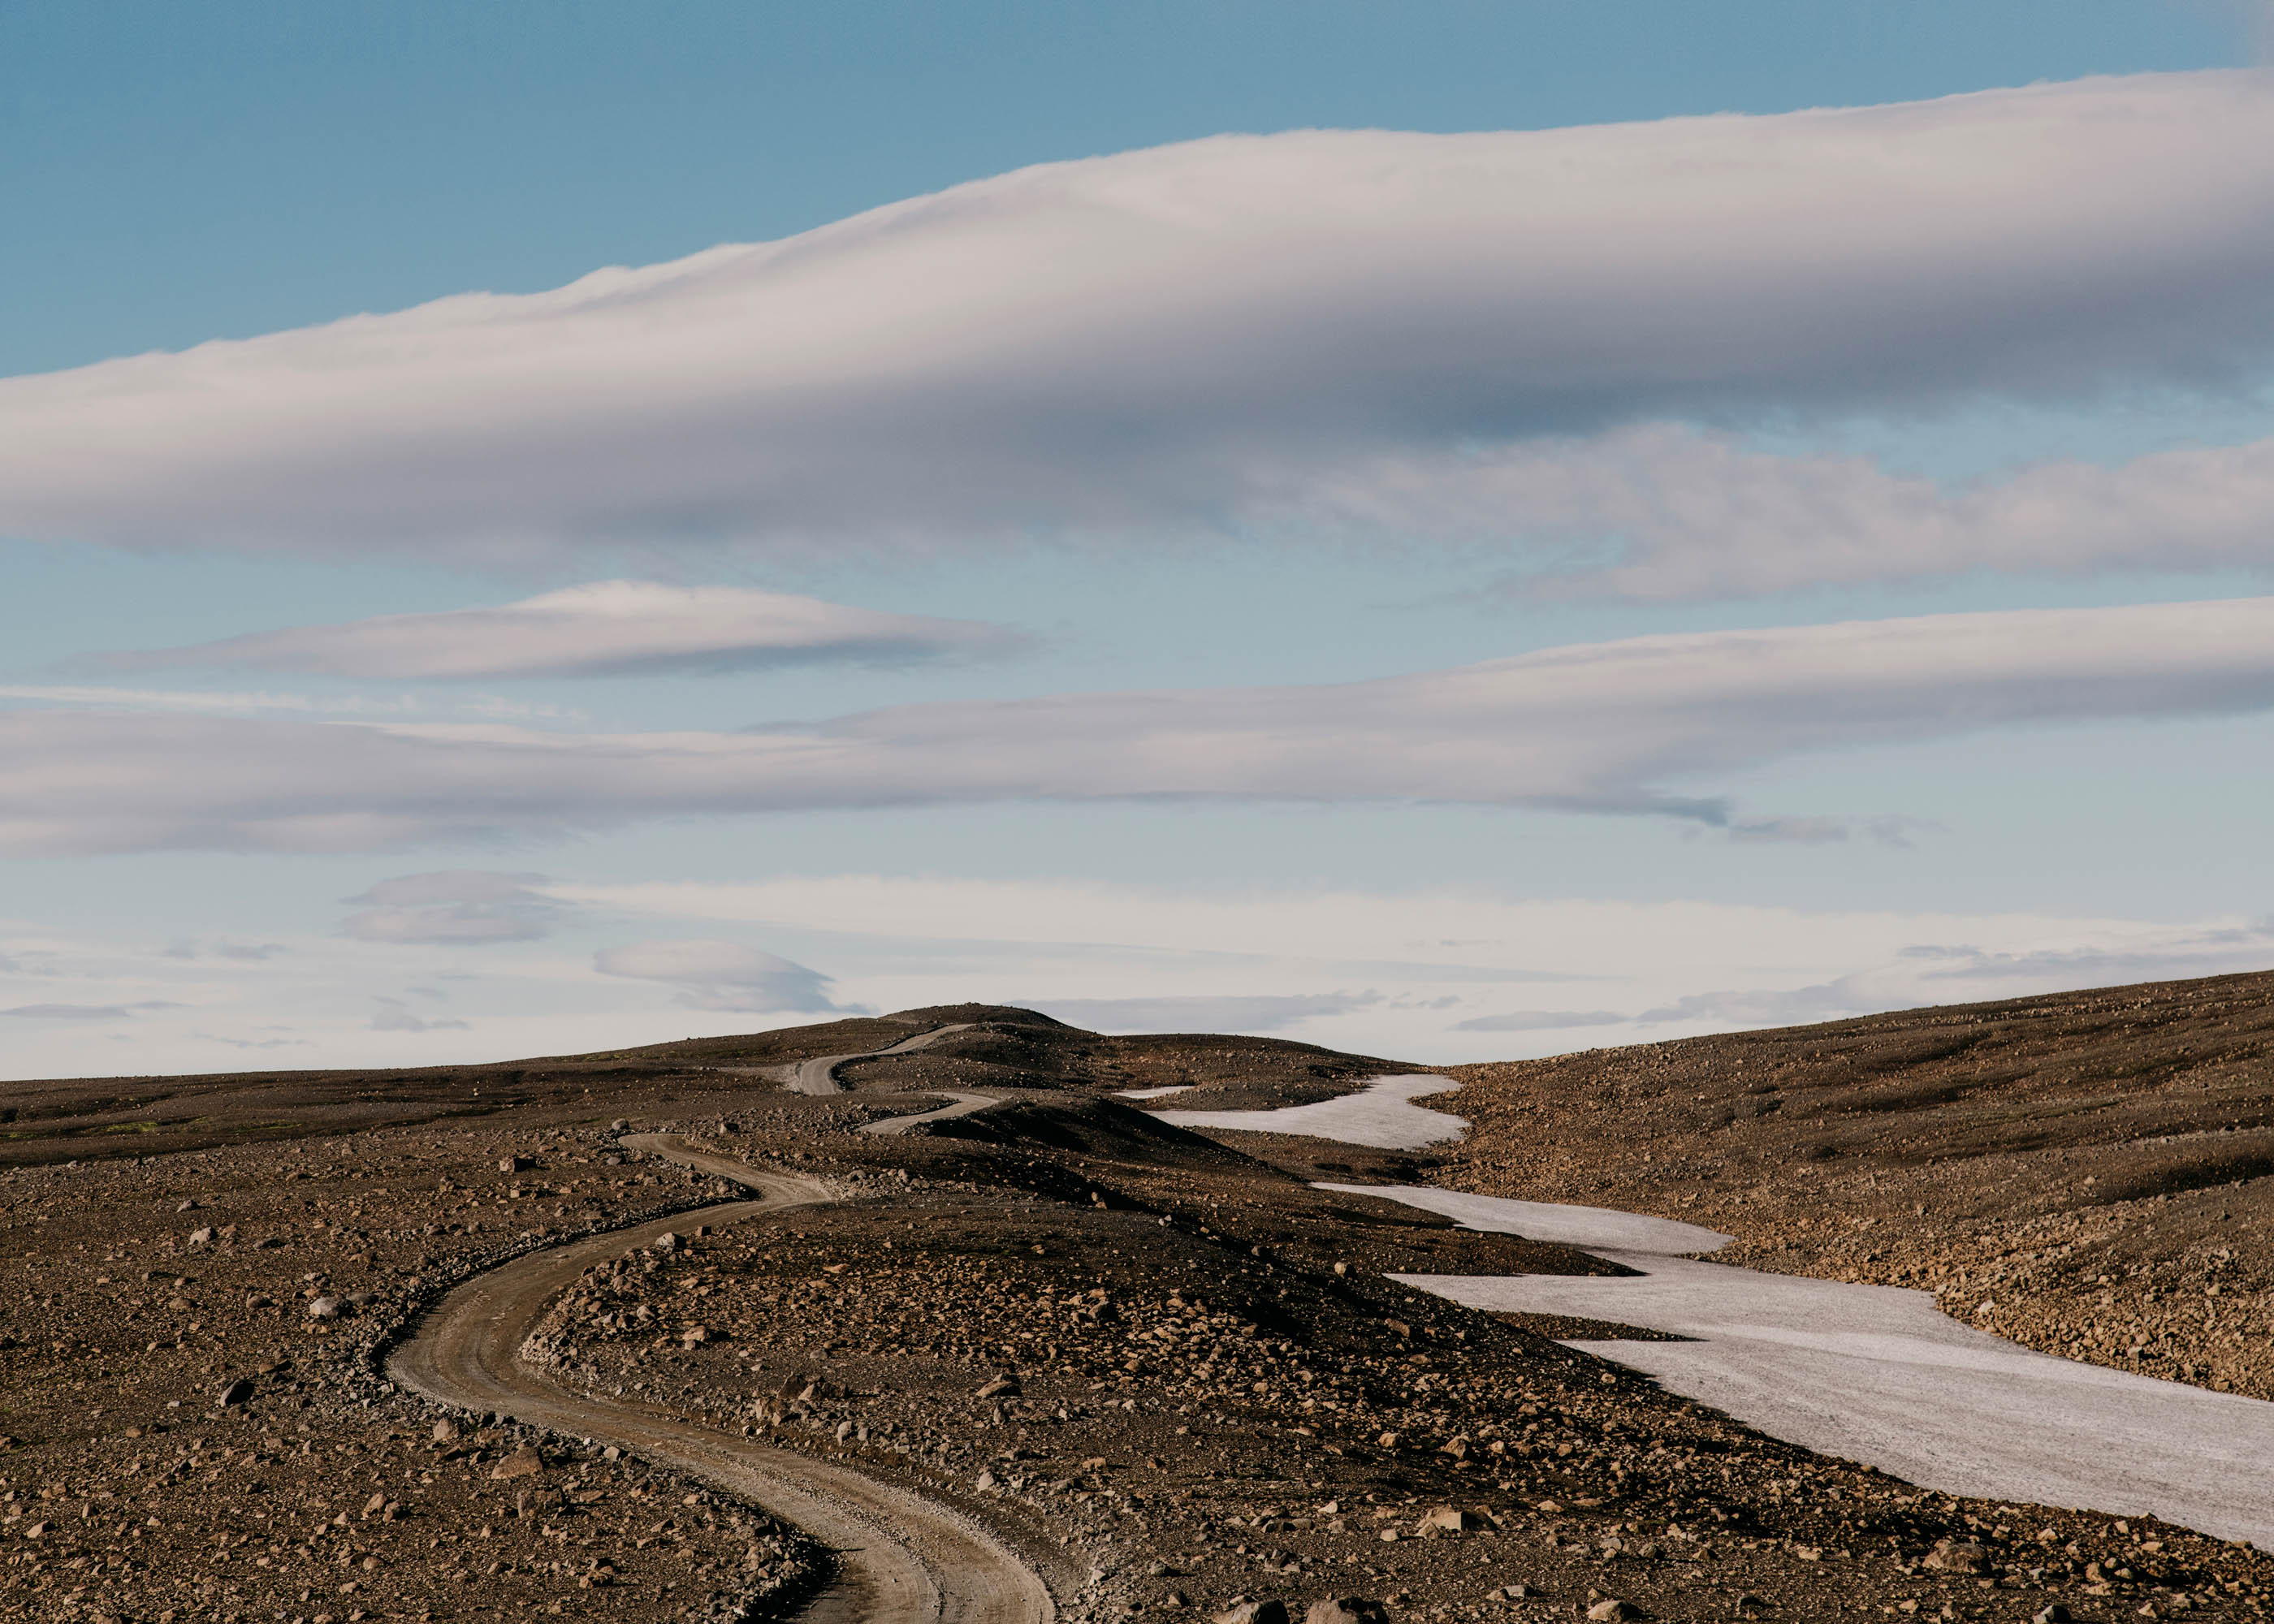 #personal #iceland #road #landscapes #mountains